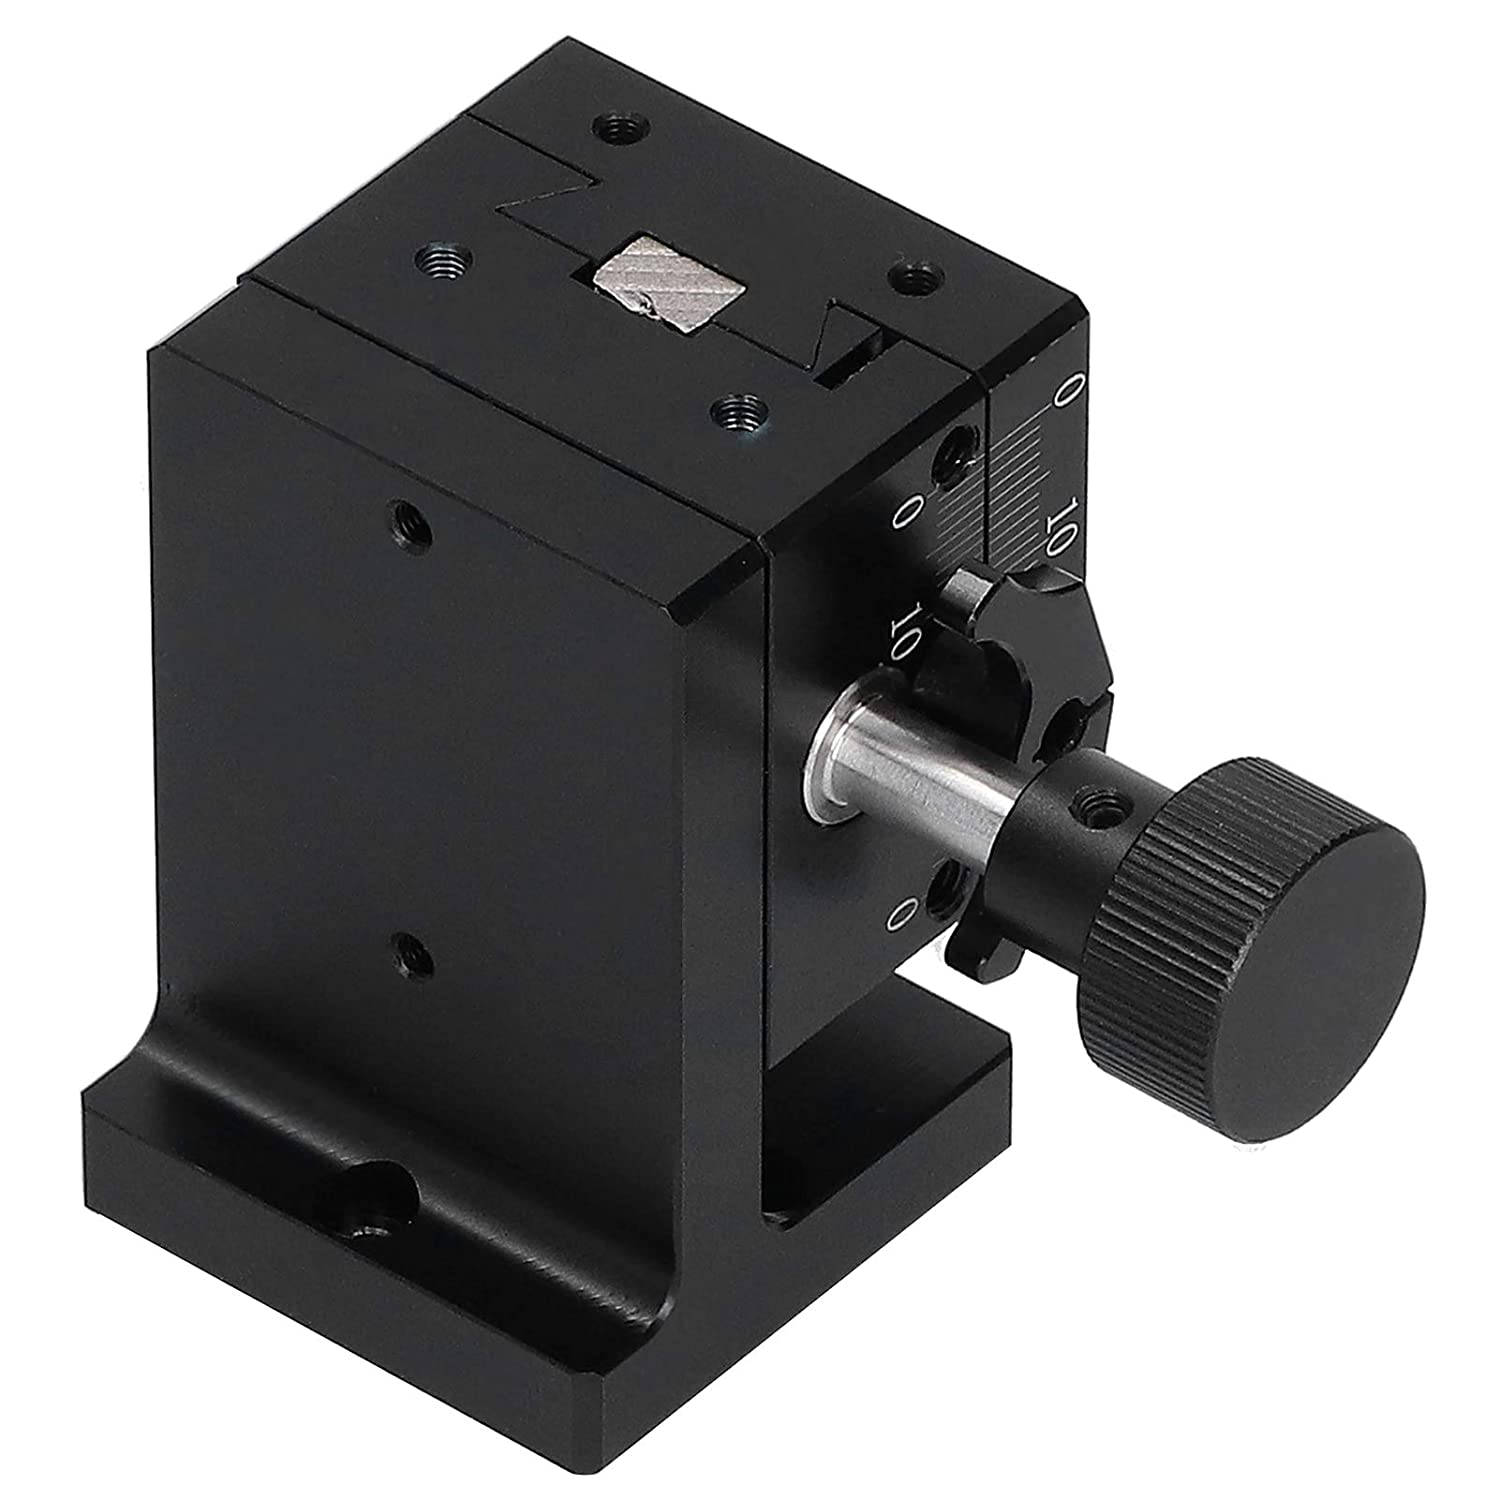 Z Axis Dovetail Manual Trimming Platform,High Accuracy Gear Lifting Stage,Silent Scratch‑Resistant,Drop‑Proof,for Optical Equipment Measuring Devices,Semiconductor Equipment,Microscopes